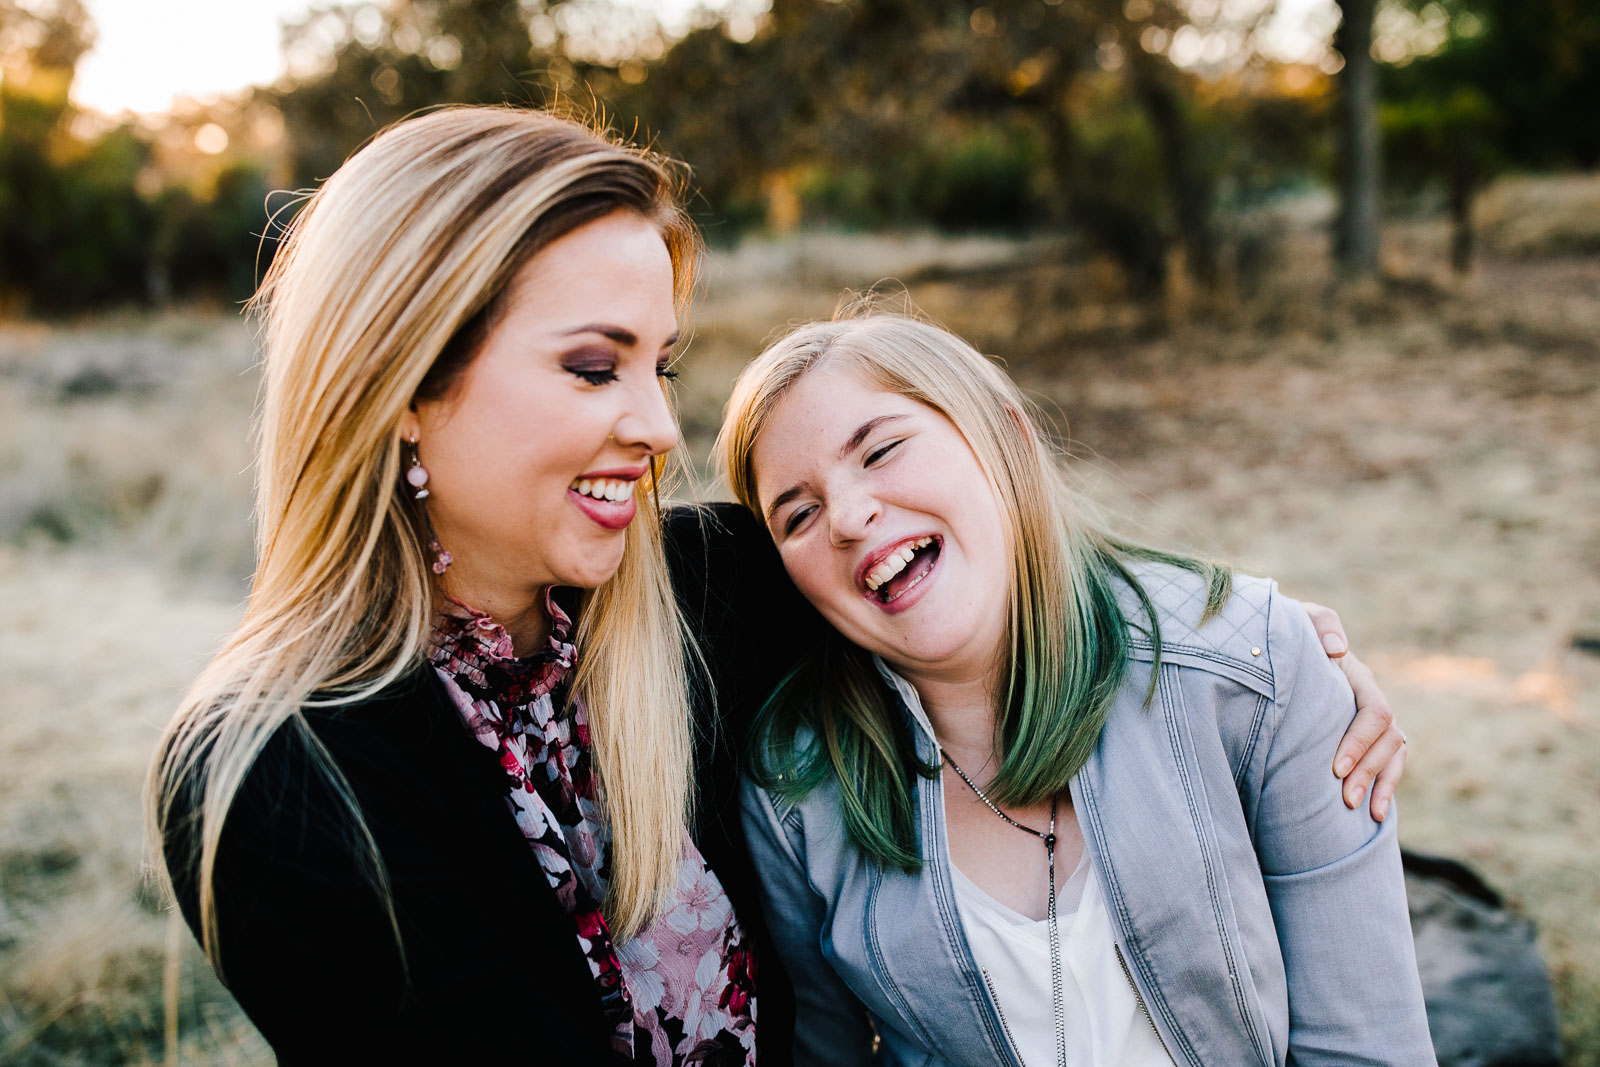 A mom and daughter laughing - How to get natural smiles in photos